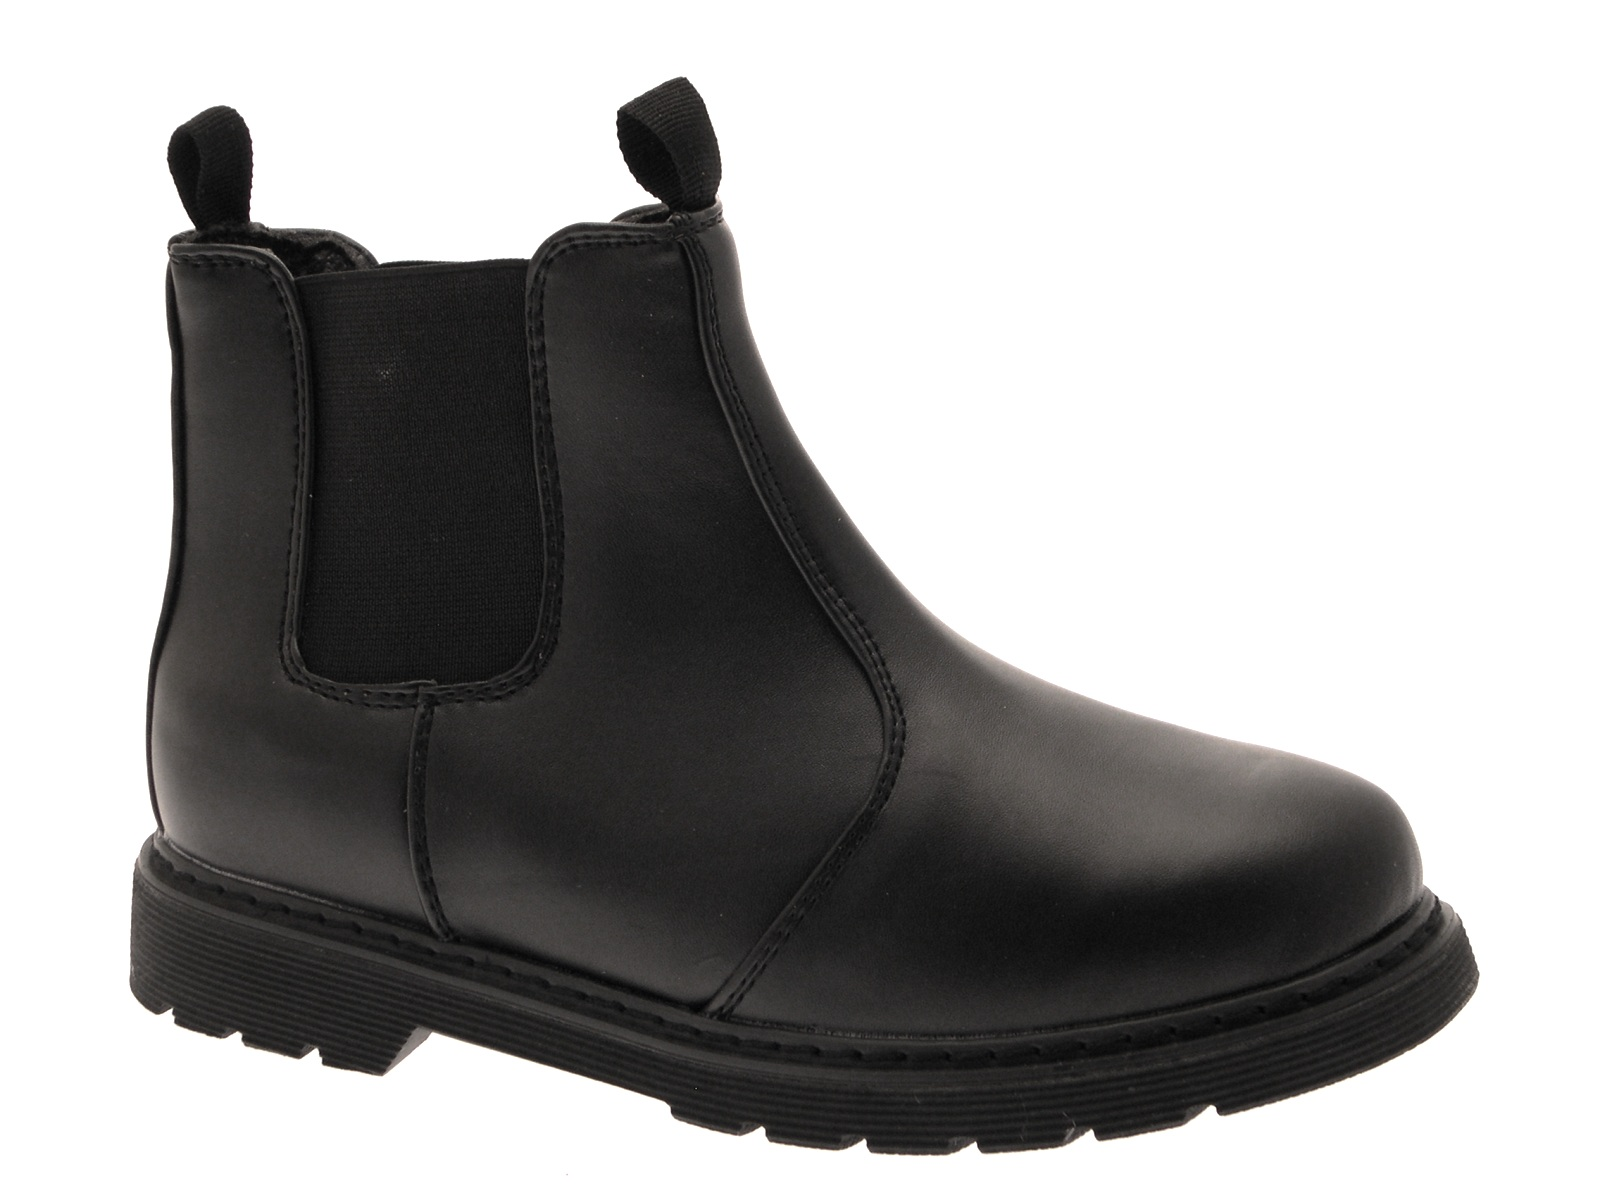 new high great look high quality Boys Black Leather School Shoes Size 5